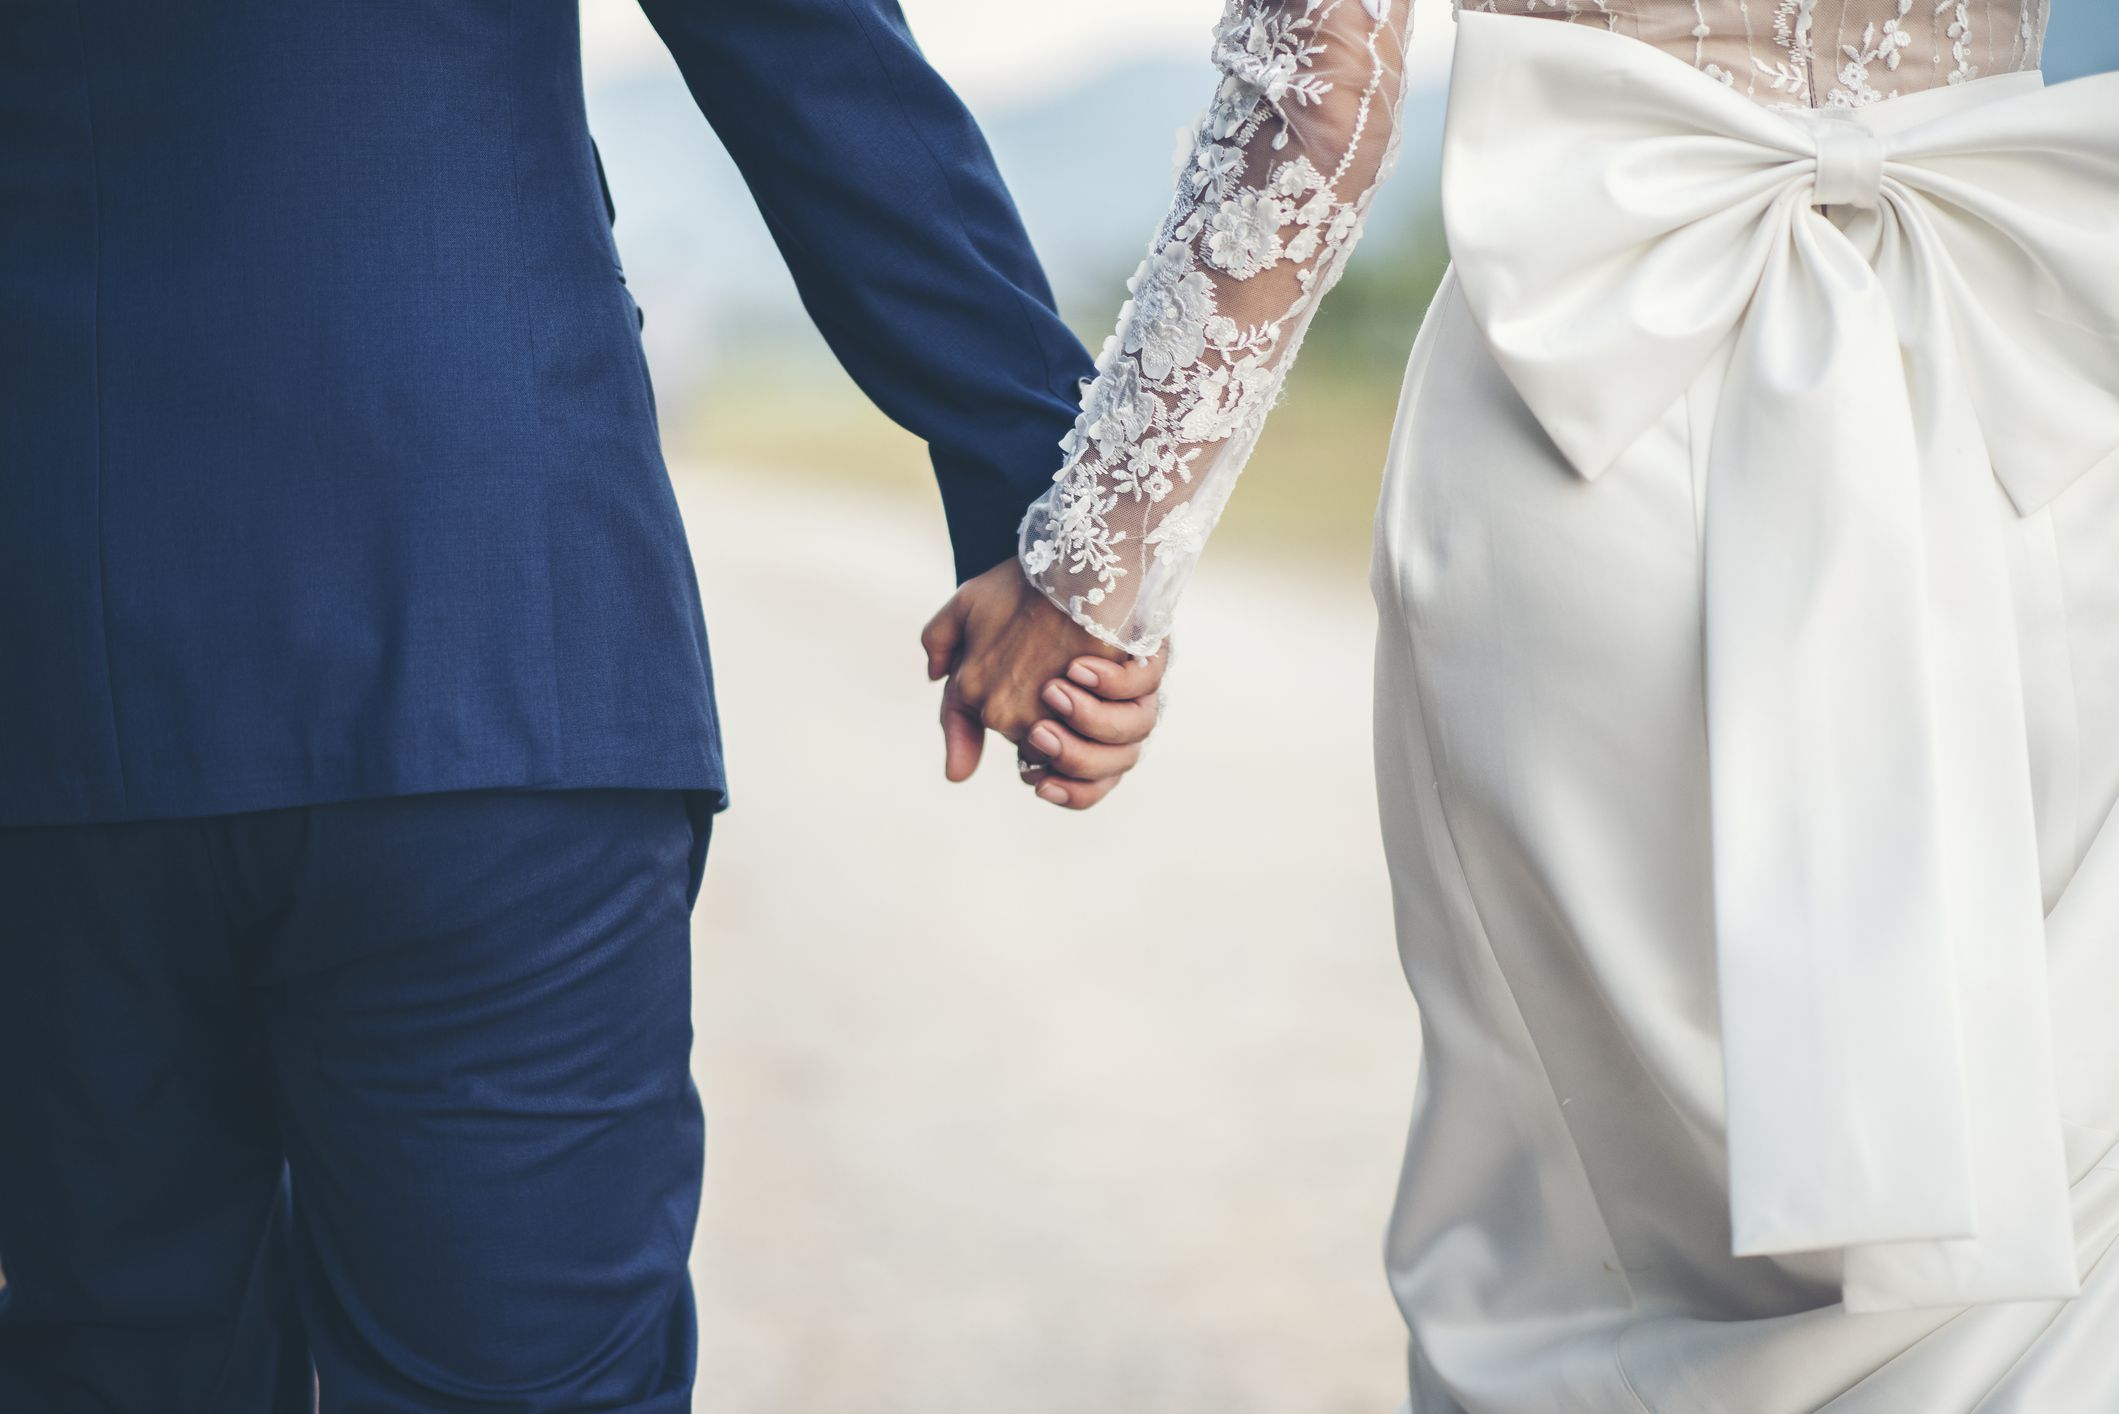 The 6 Best Wedding Insurance Companies of 2020 in 2020